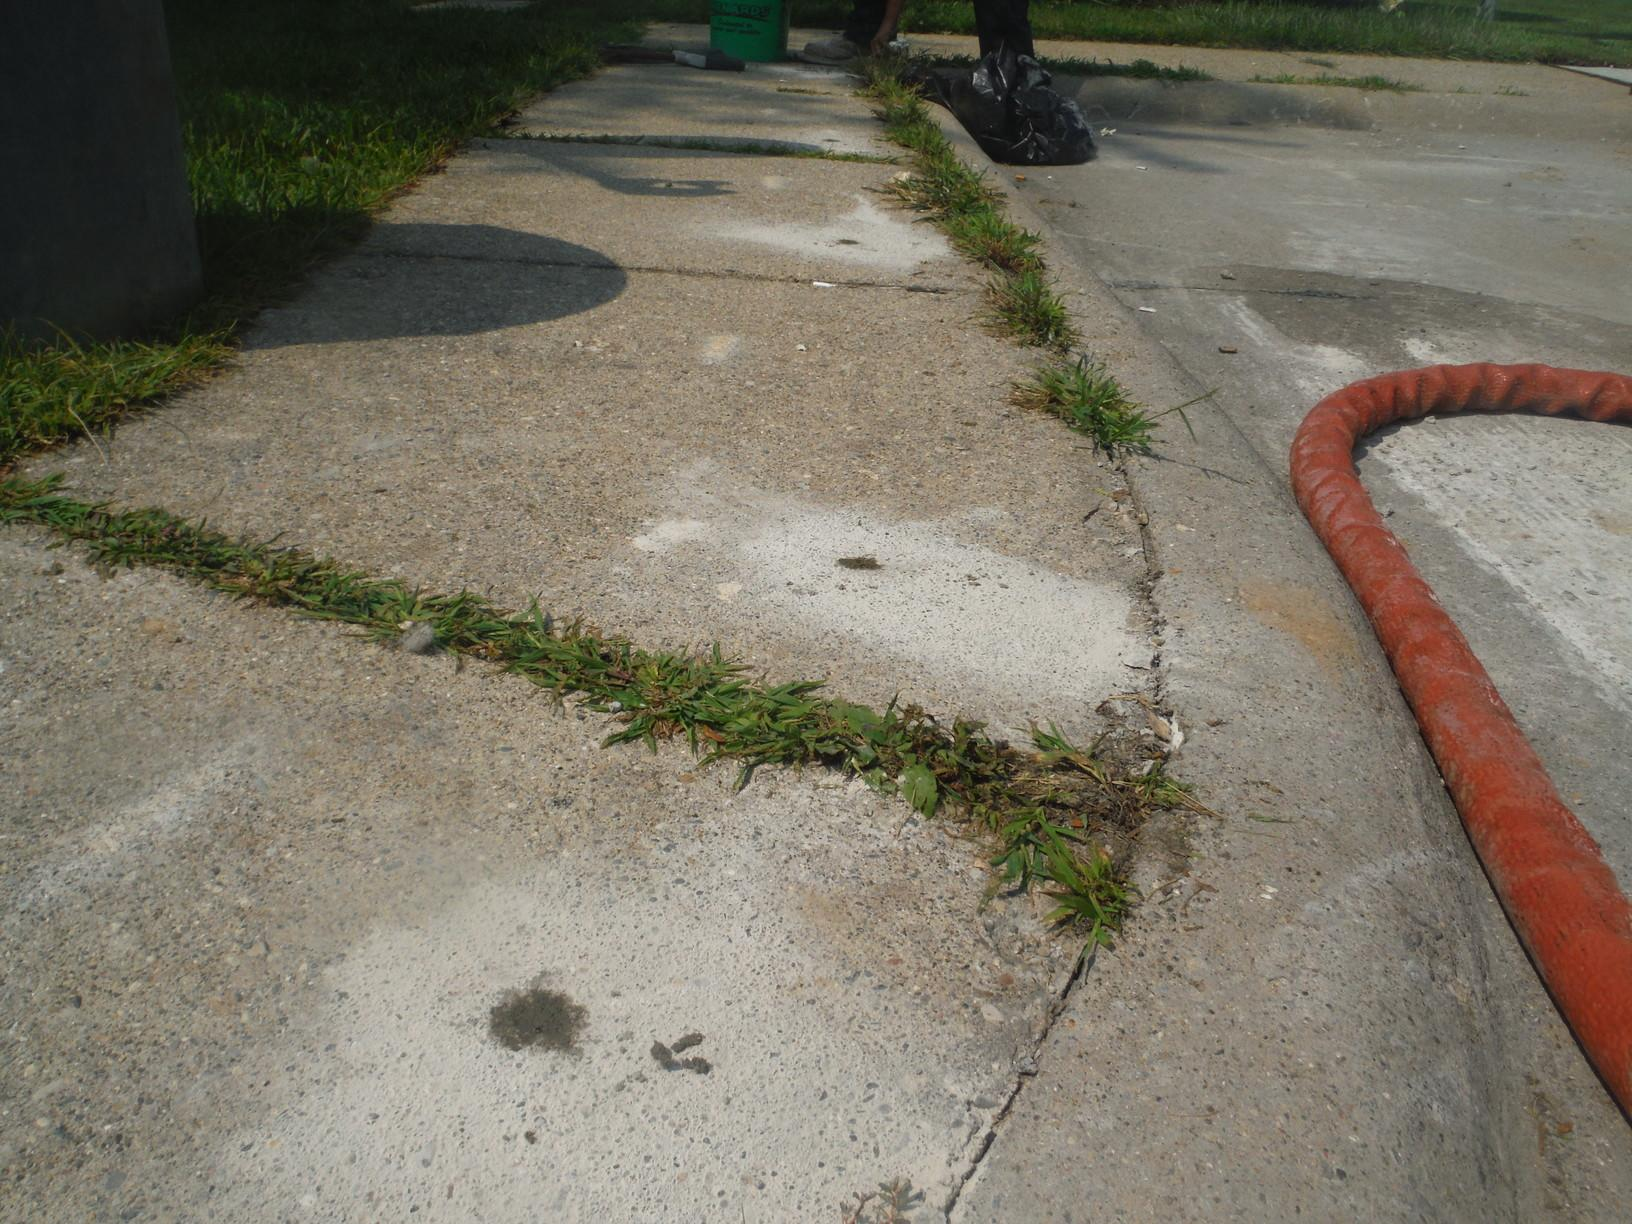 Concrete Slab on Sidewalk Lifted in Macomb, MI - After Photo